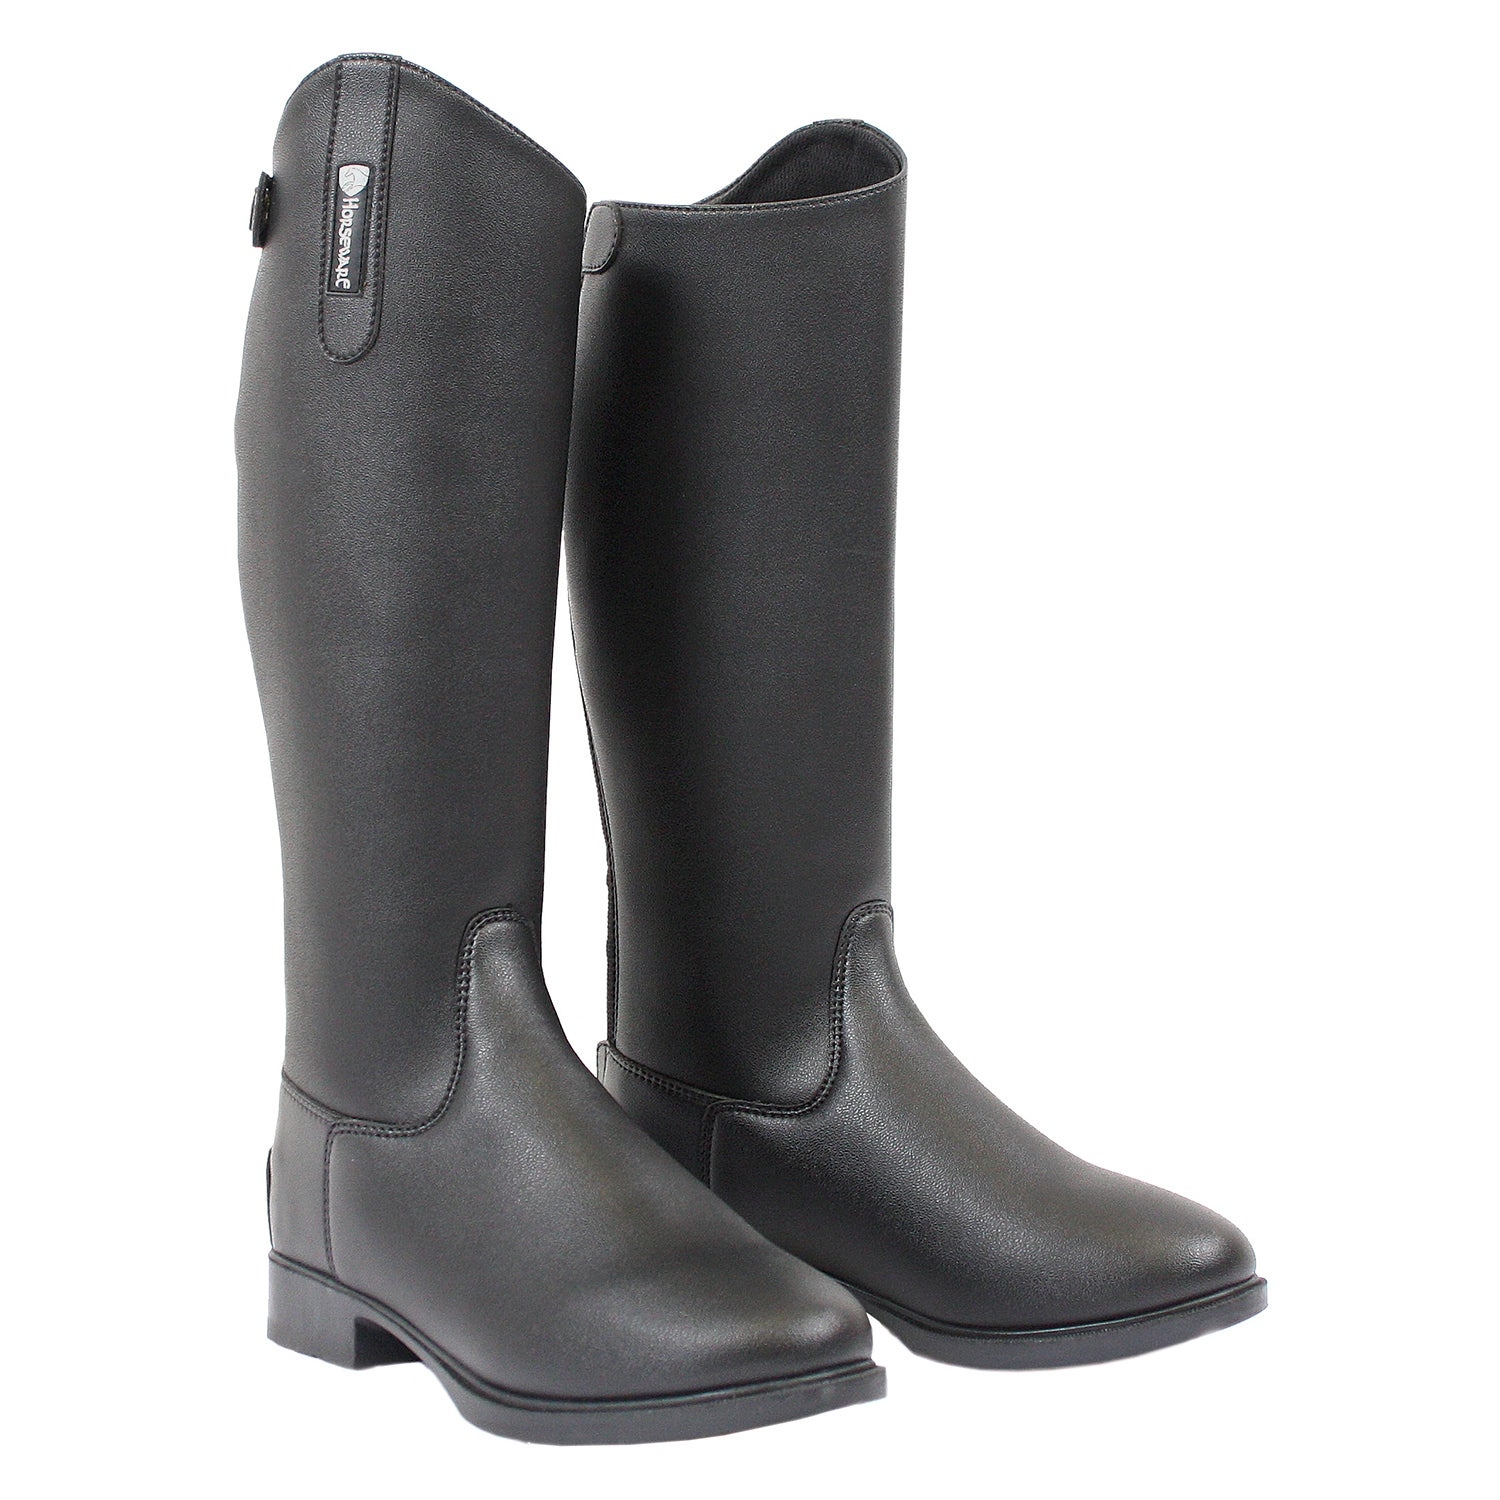 Horseware Synthetic Leather Ladies Long Riding Boots